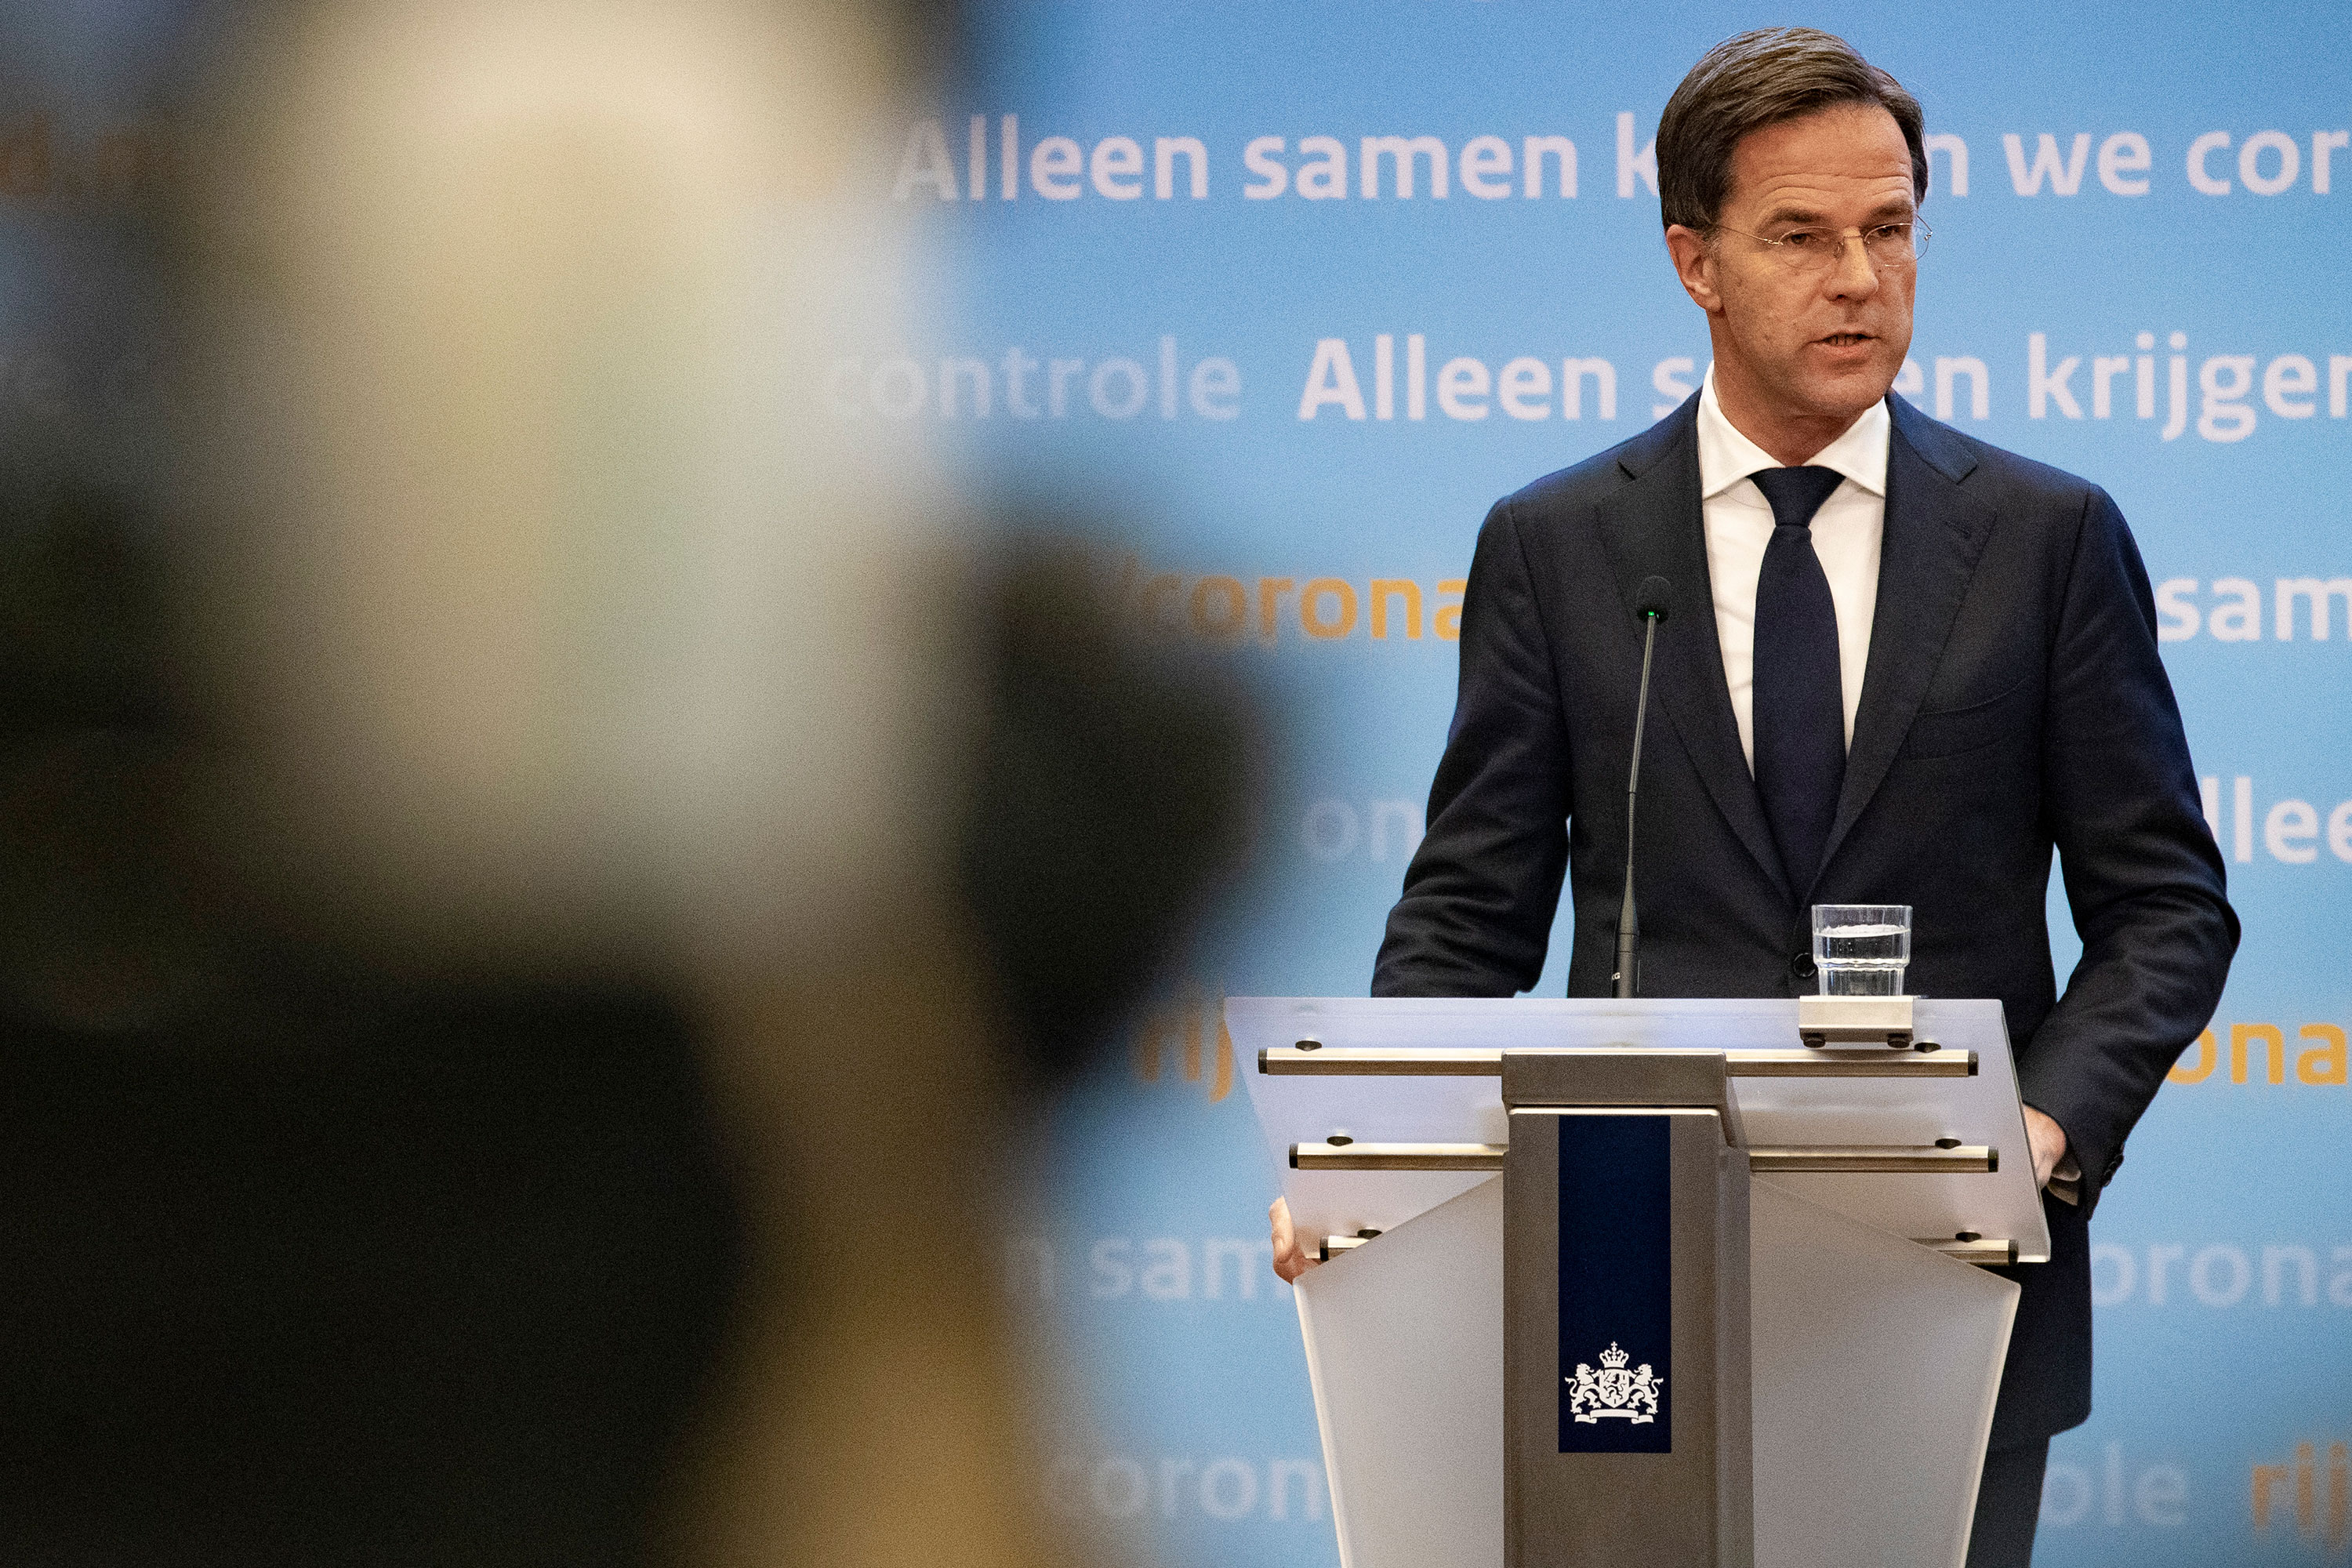 Dutch Prime Minister Mark Rutte speaks during a press conference on November 3 in The Hague, Netherlands.